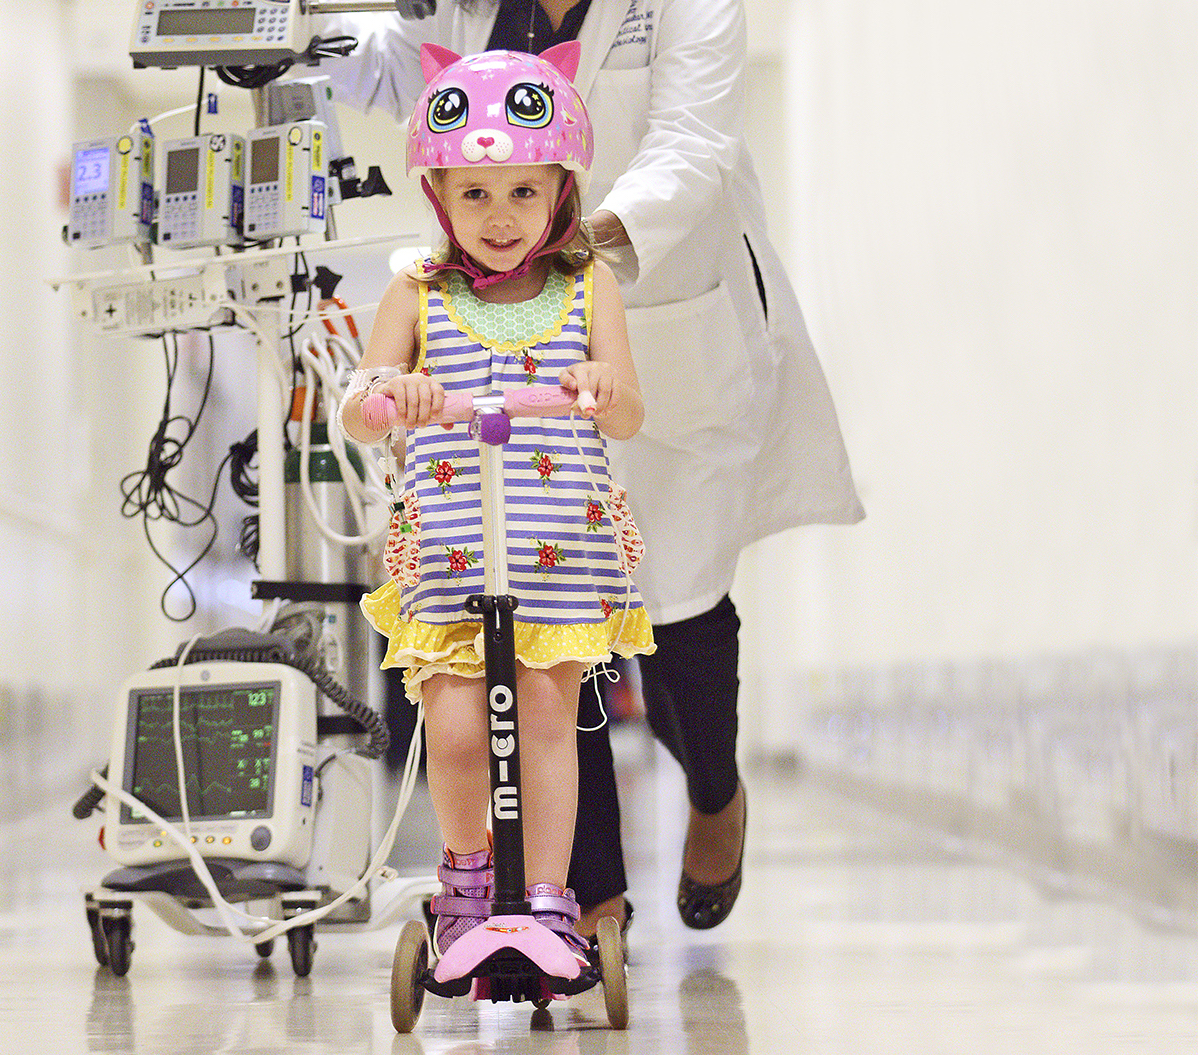 20 Top Children S Hospitals In Innovation And Technology Parents